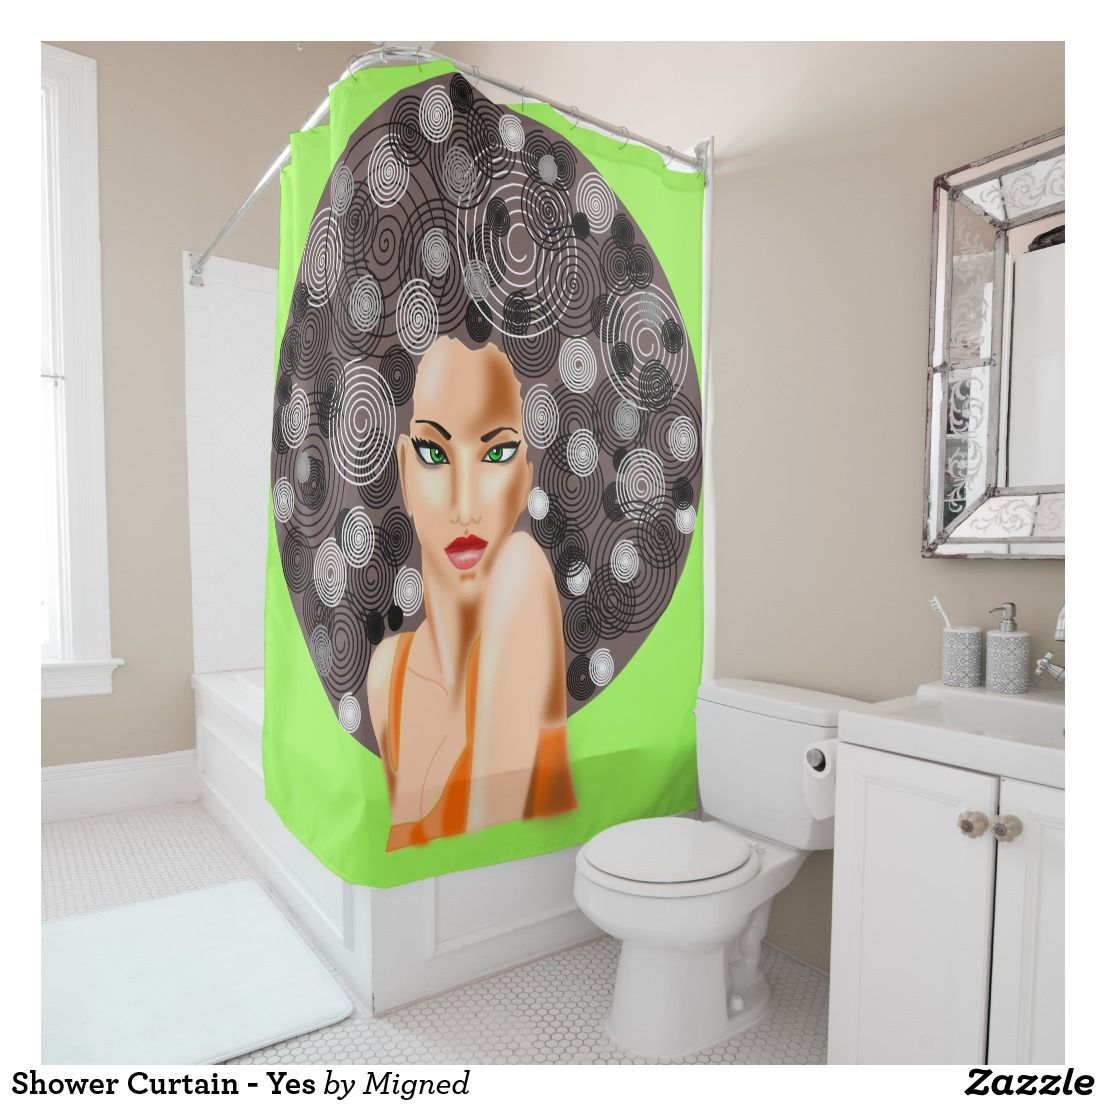 Shower curtain yes cellections bath mats u shower curtains